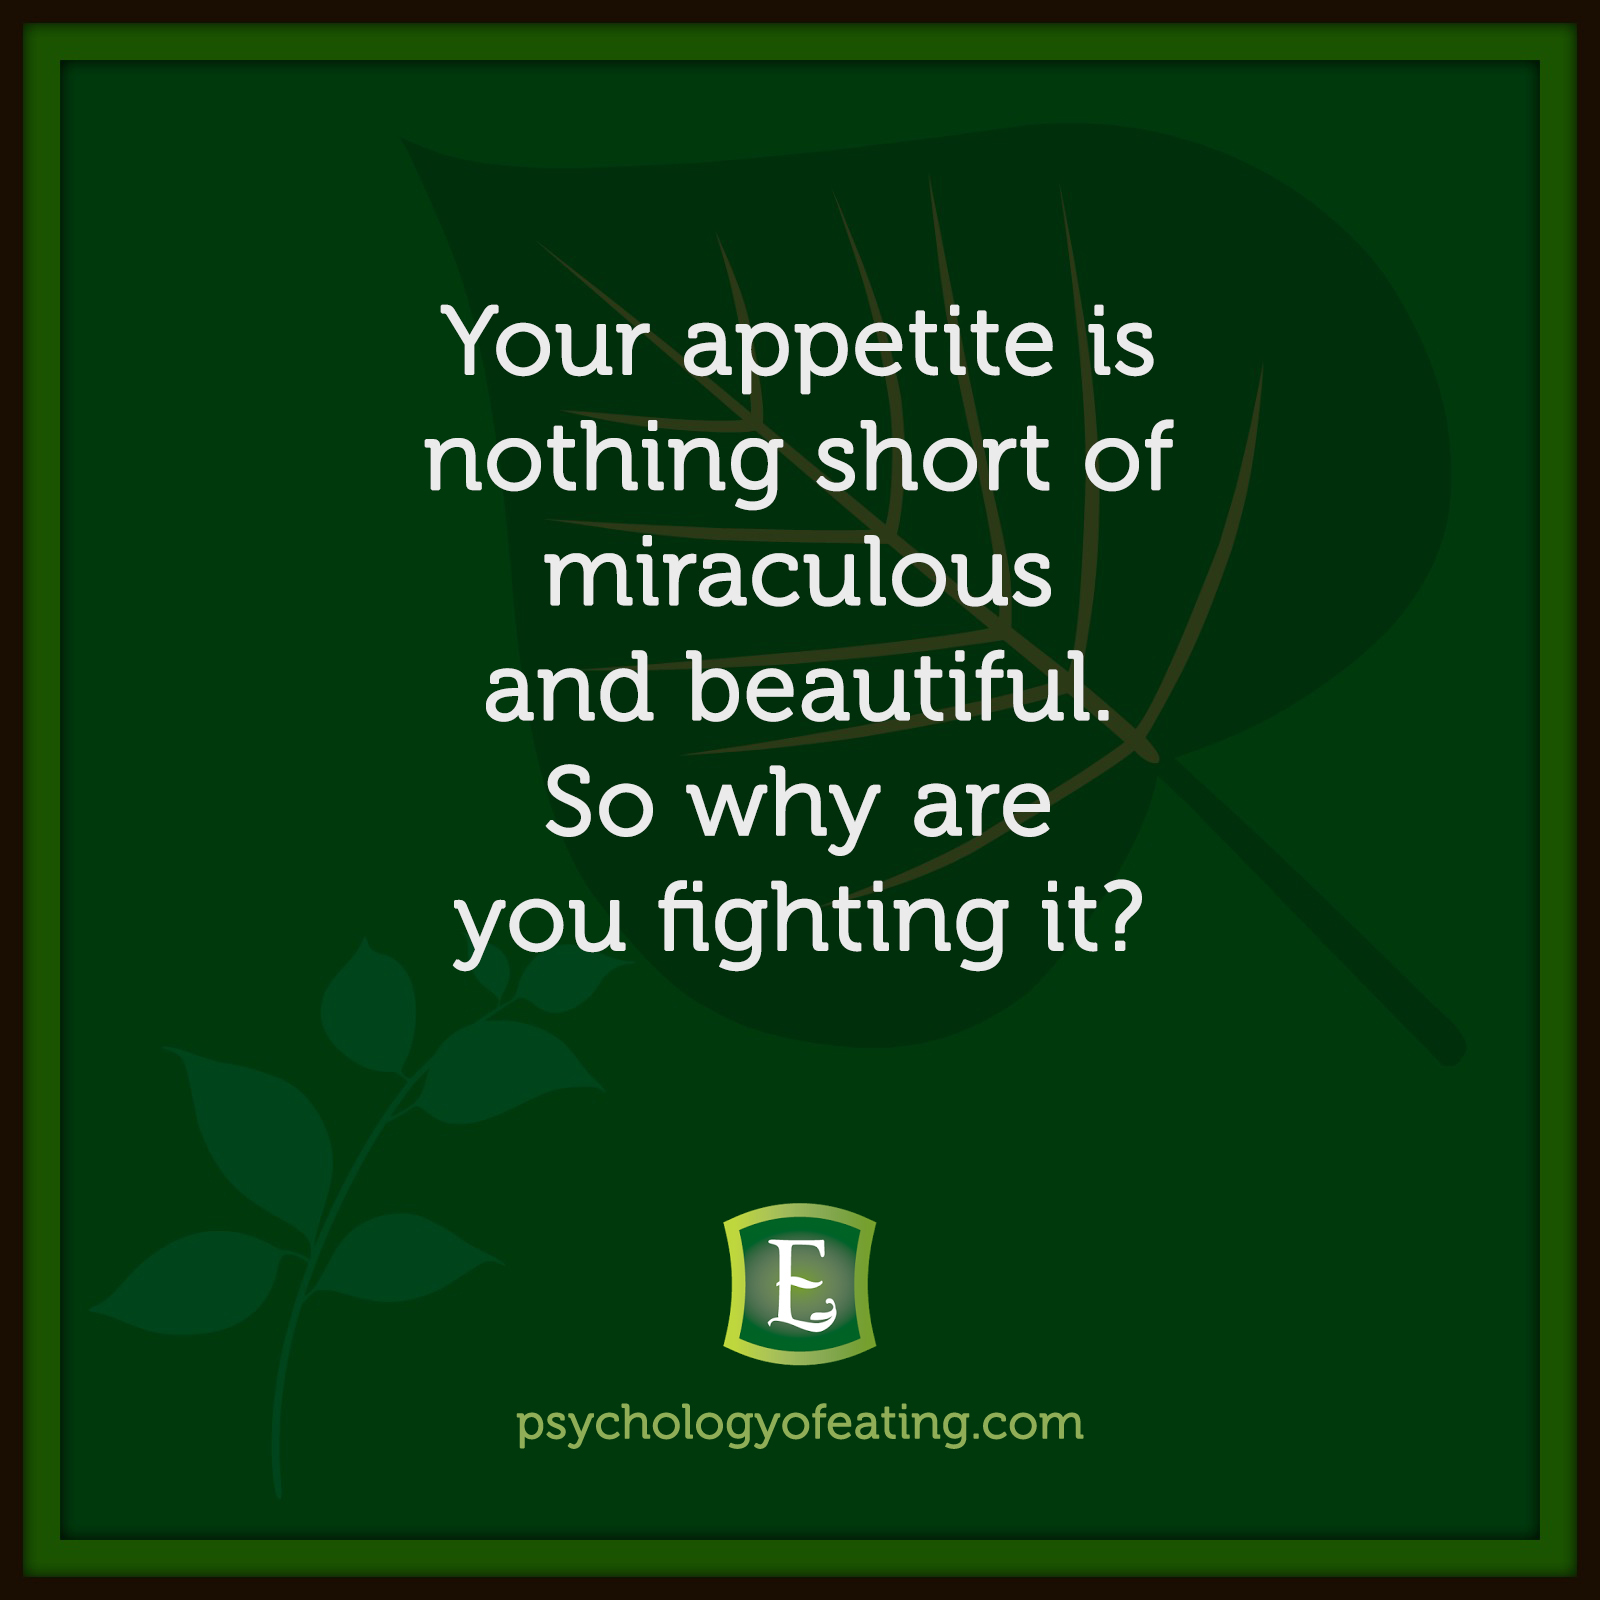 Your appetite is nothing short of miraculous and beautiful. So why are you fighting it? #health #nutrition #eatingpsychology #IPE